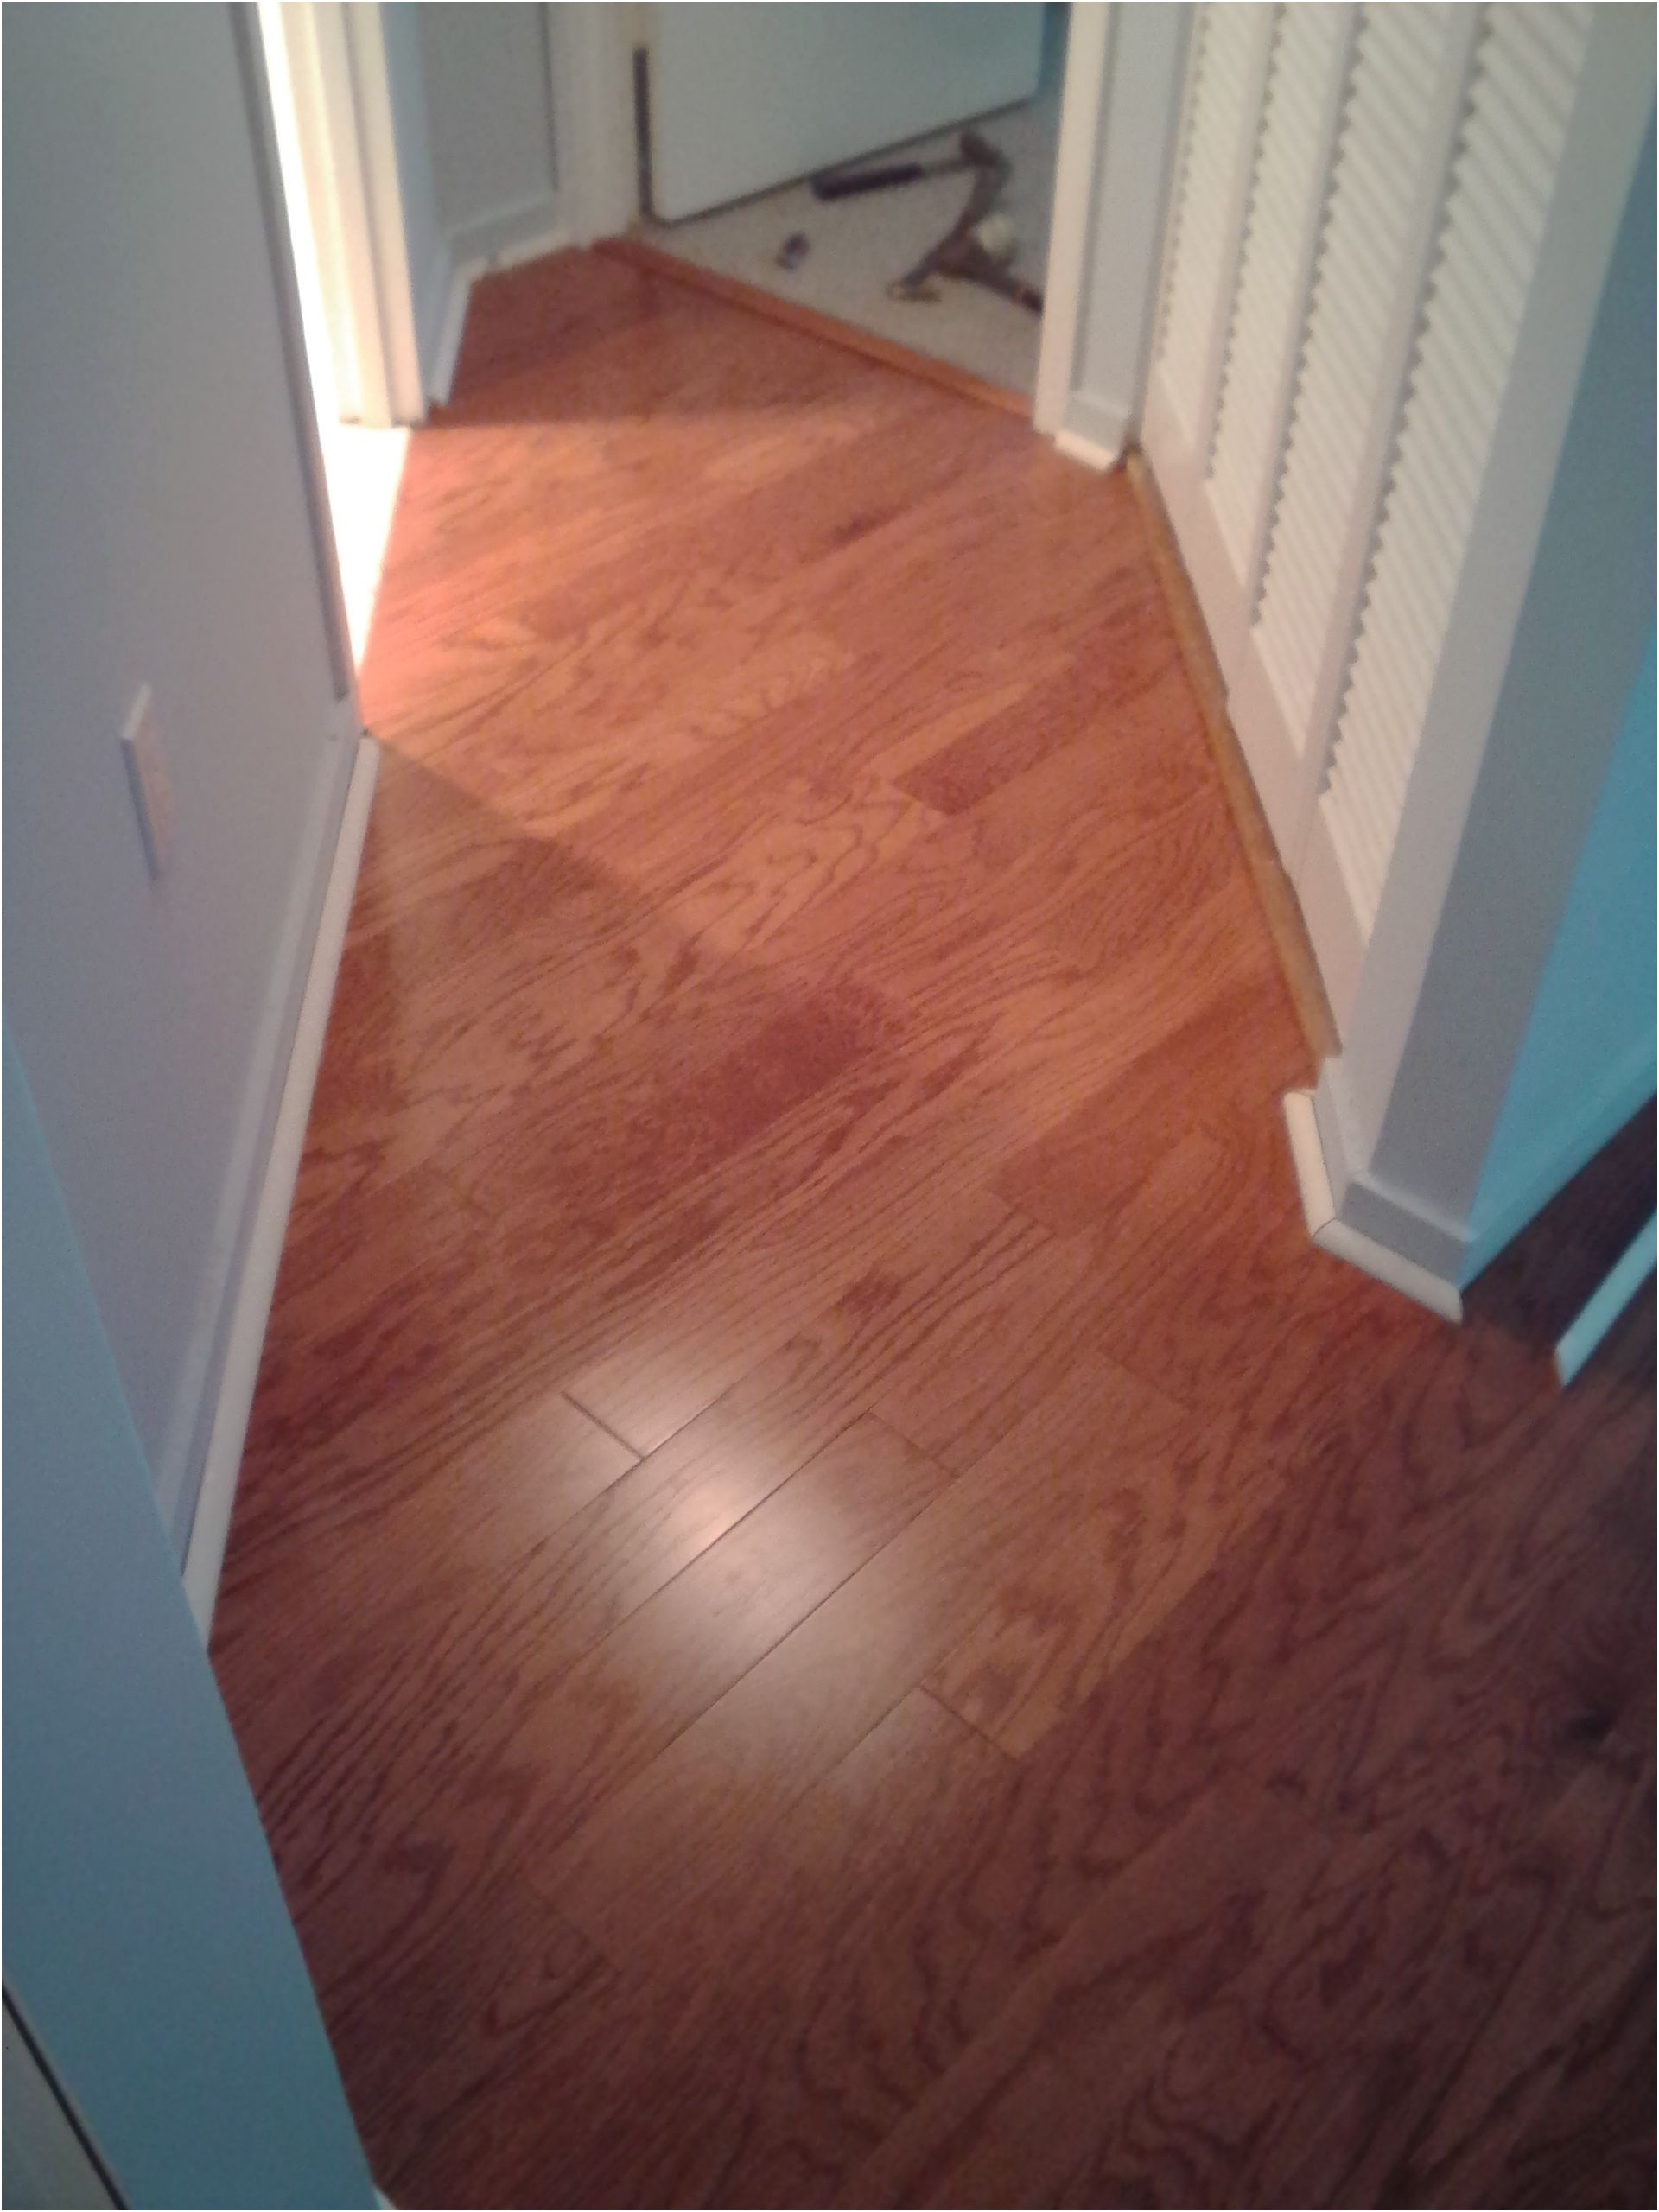 1 2 engineered hardwood flooring nailer of engineered wood flooring installation guide awesome engineered inside engineered wood flooring installation guide awesome engineered hardwood flooring diagonal installation throughout the